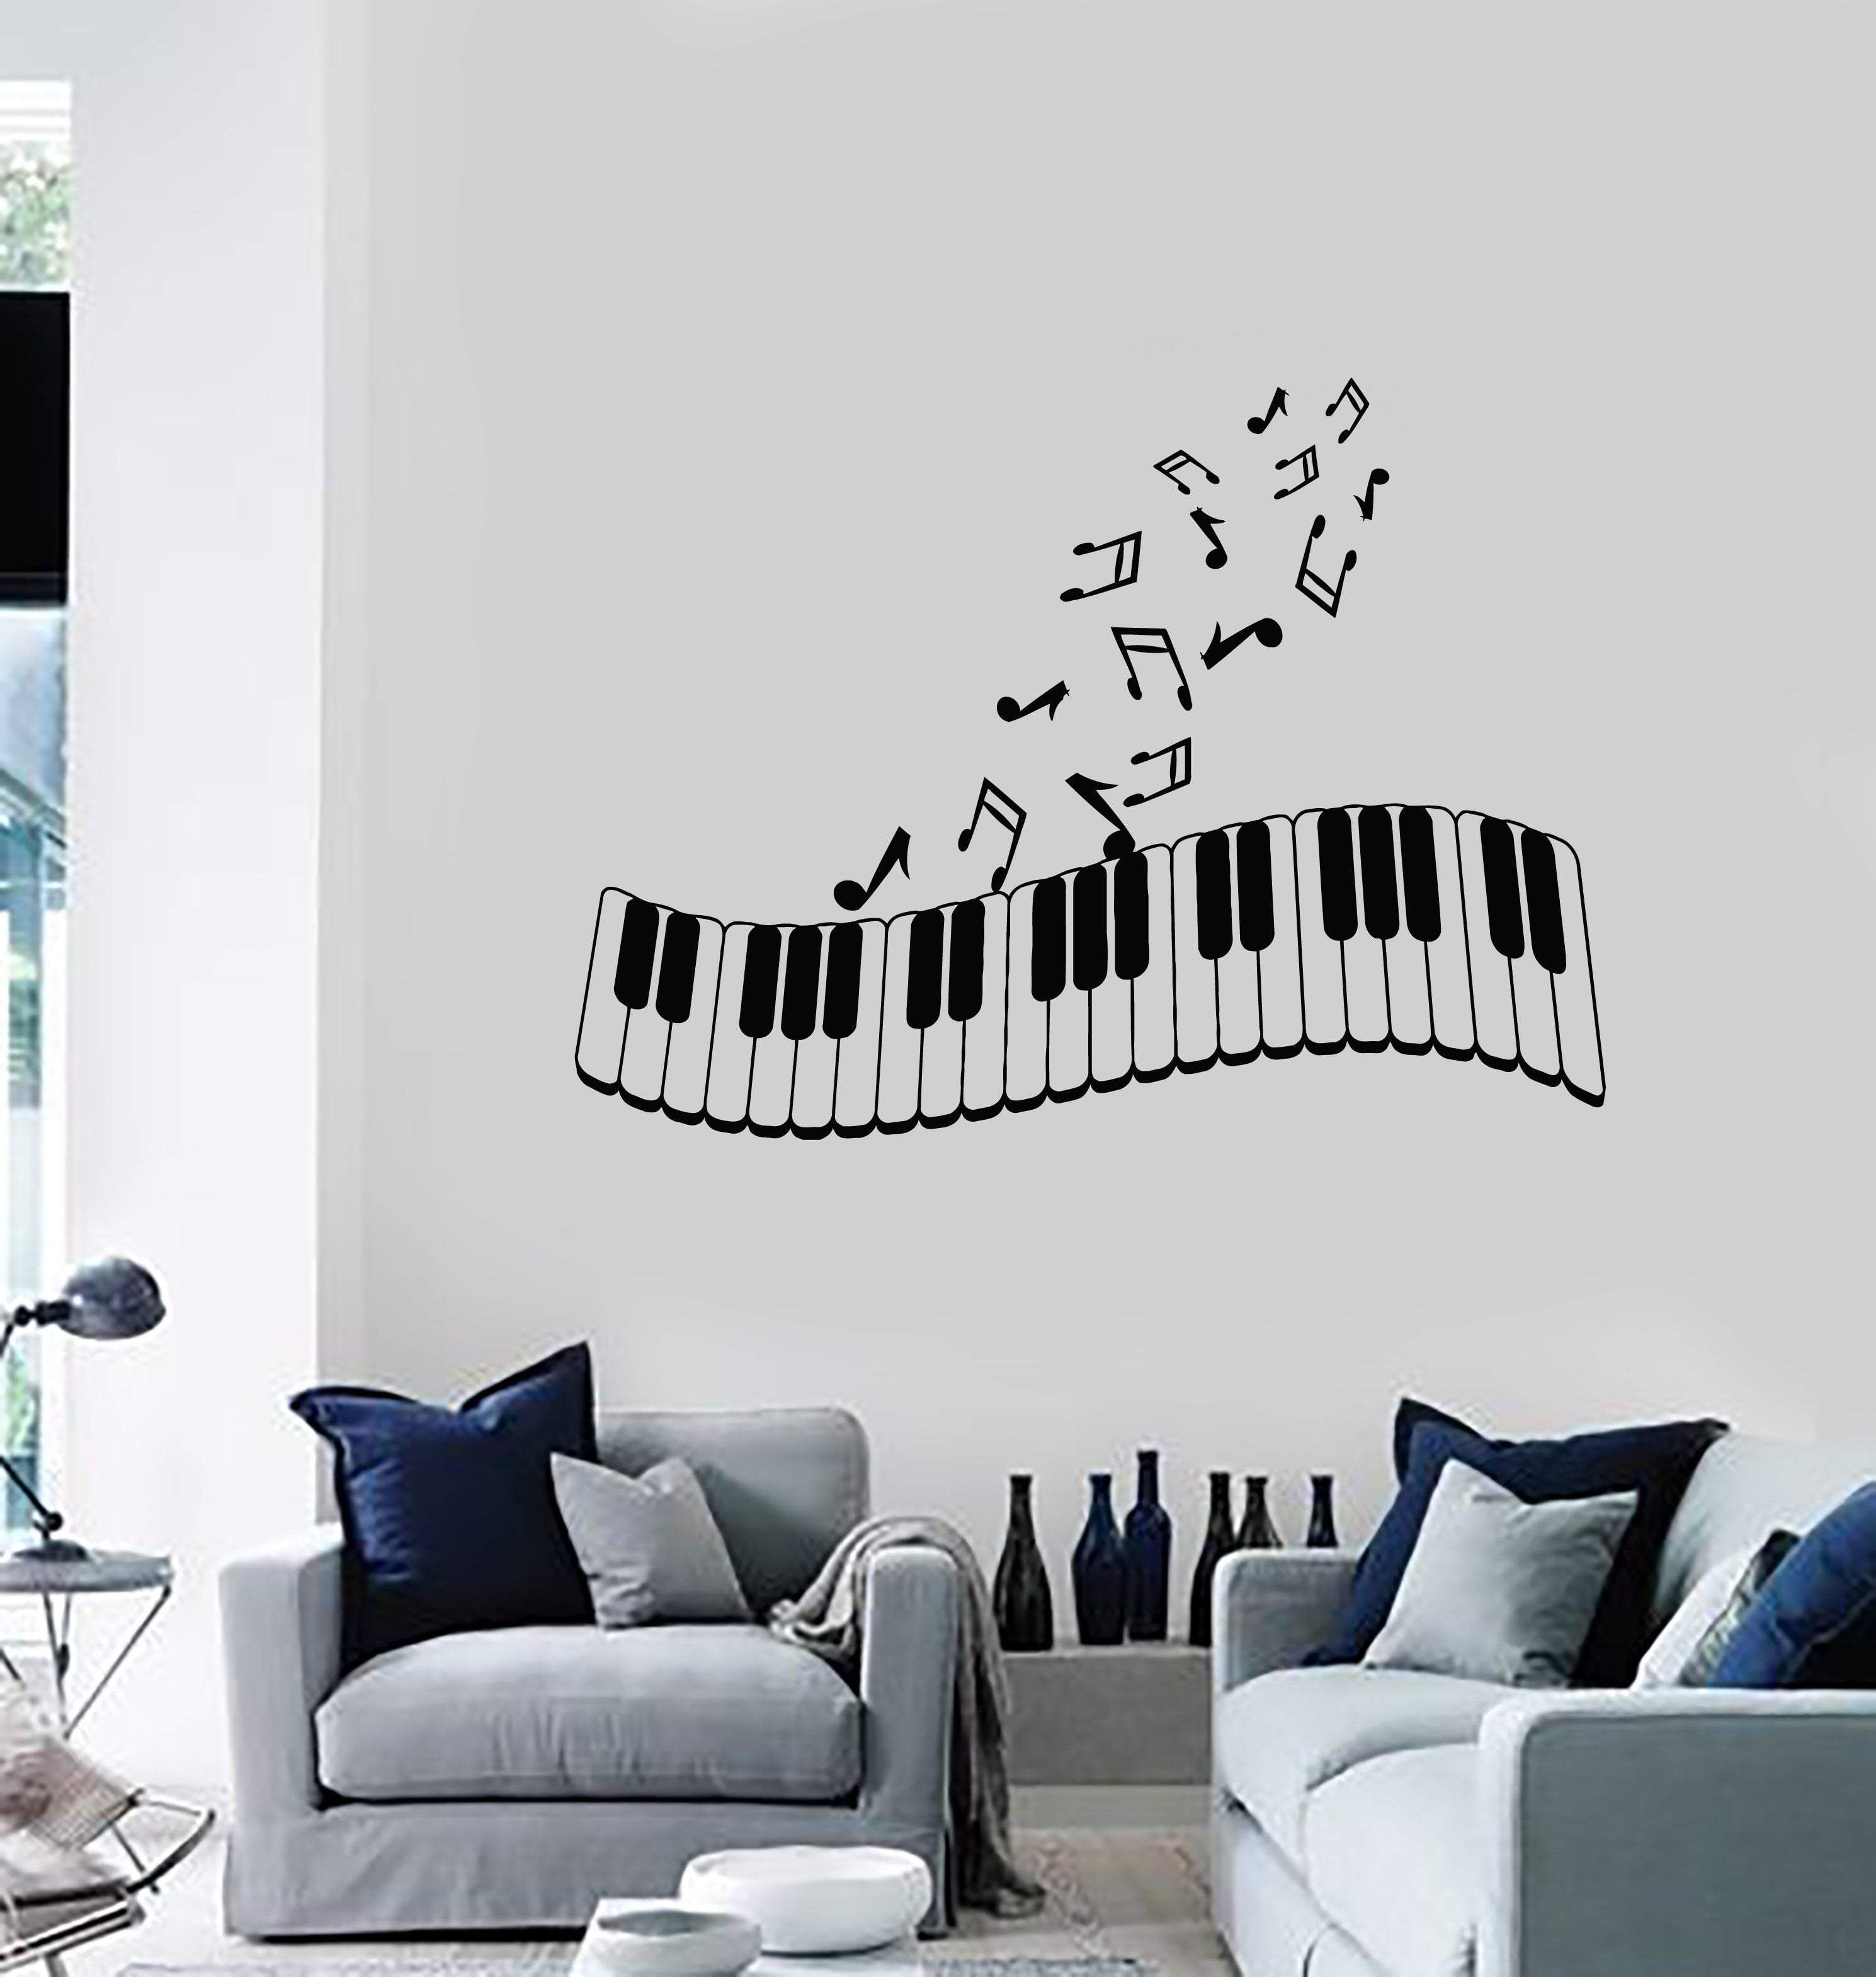 Vinyl Wall Decal Piano Musical Notes Music Art Living Room Decor